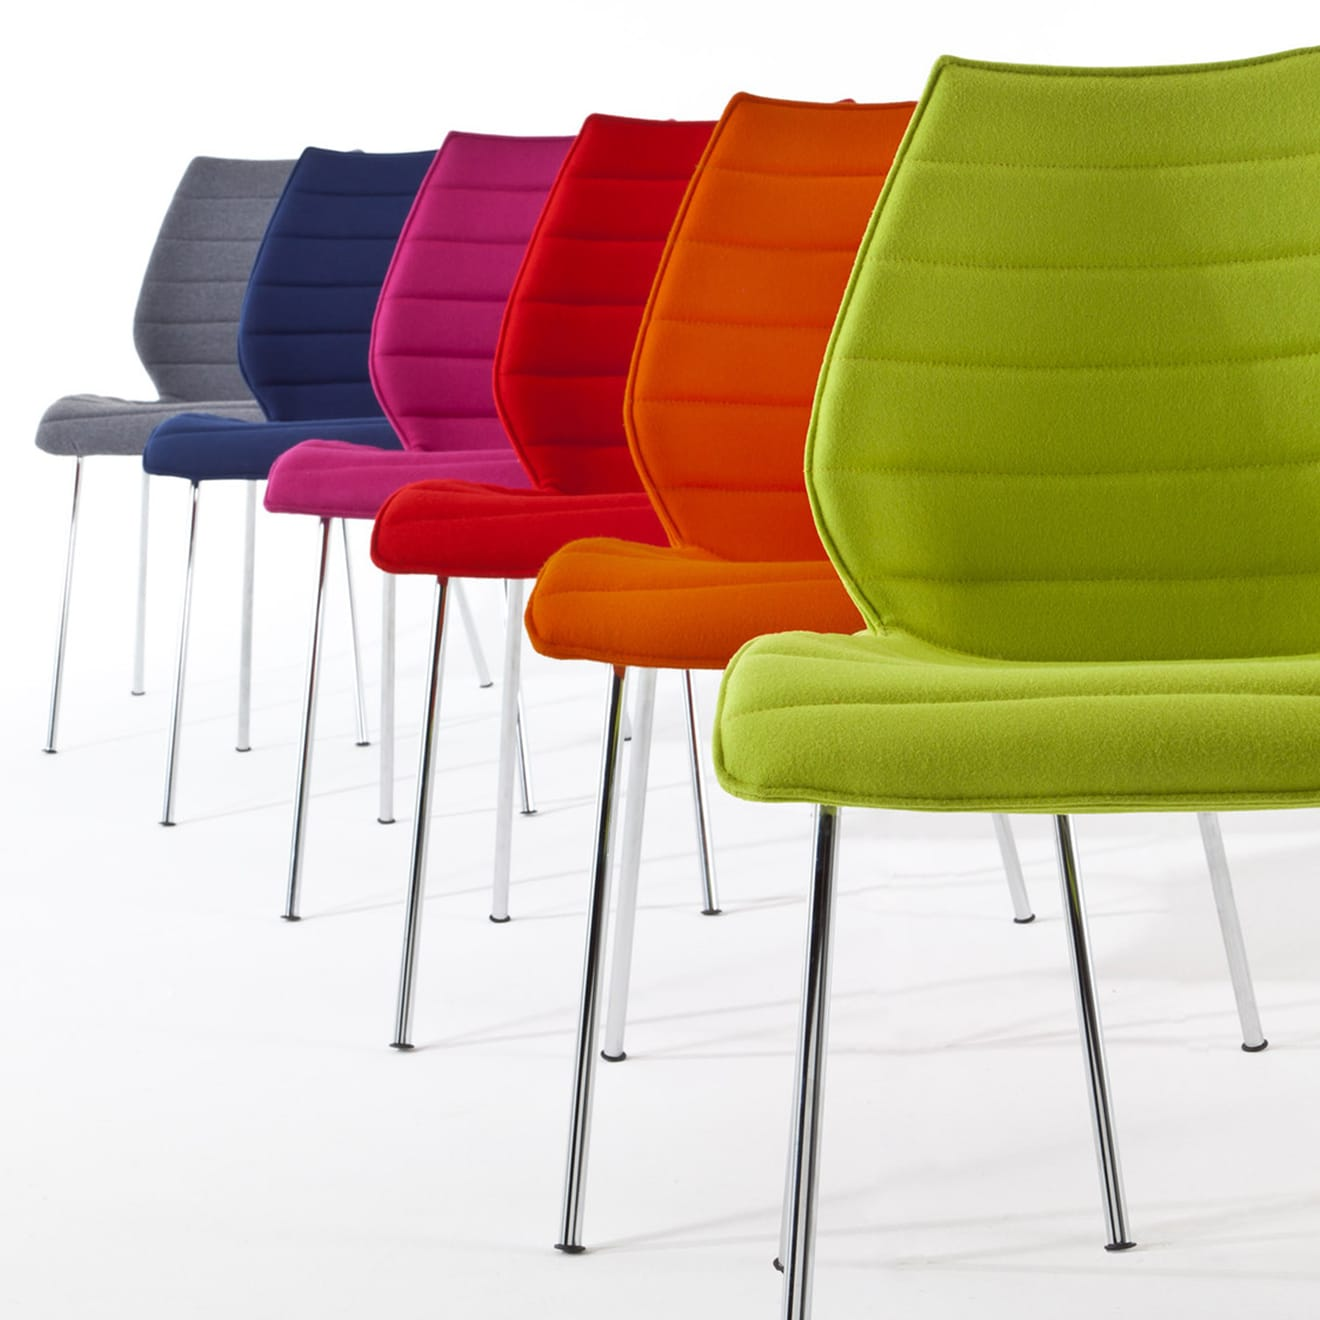 Maui Soft Chair by Kartell